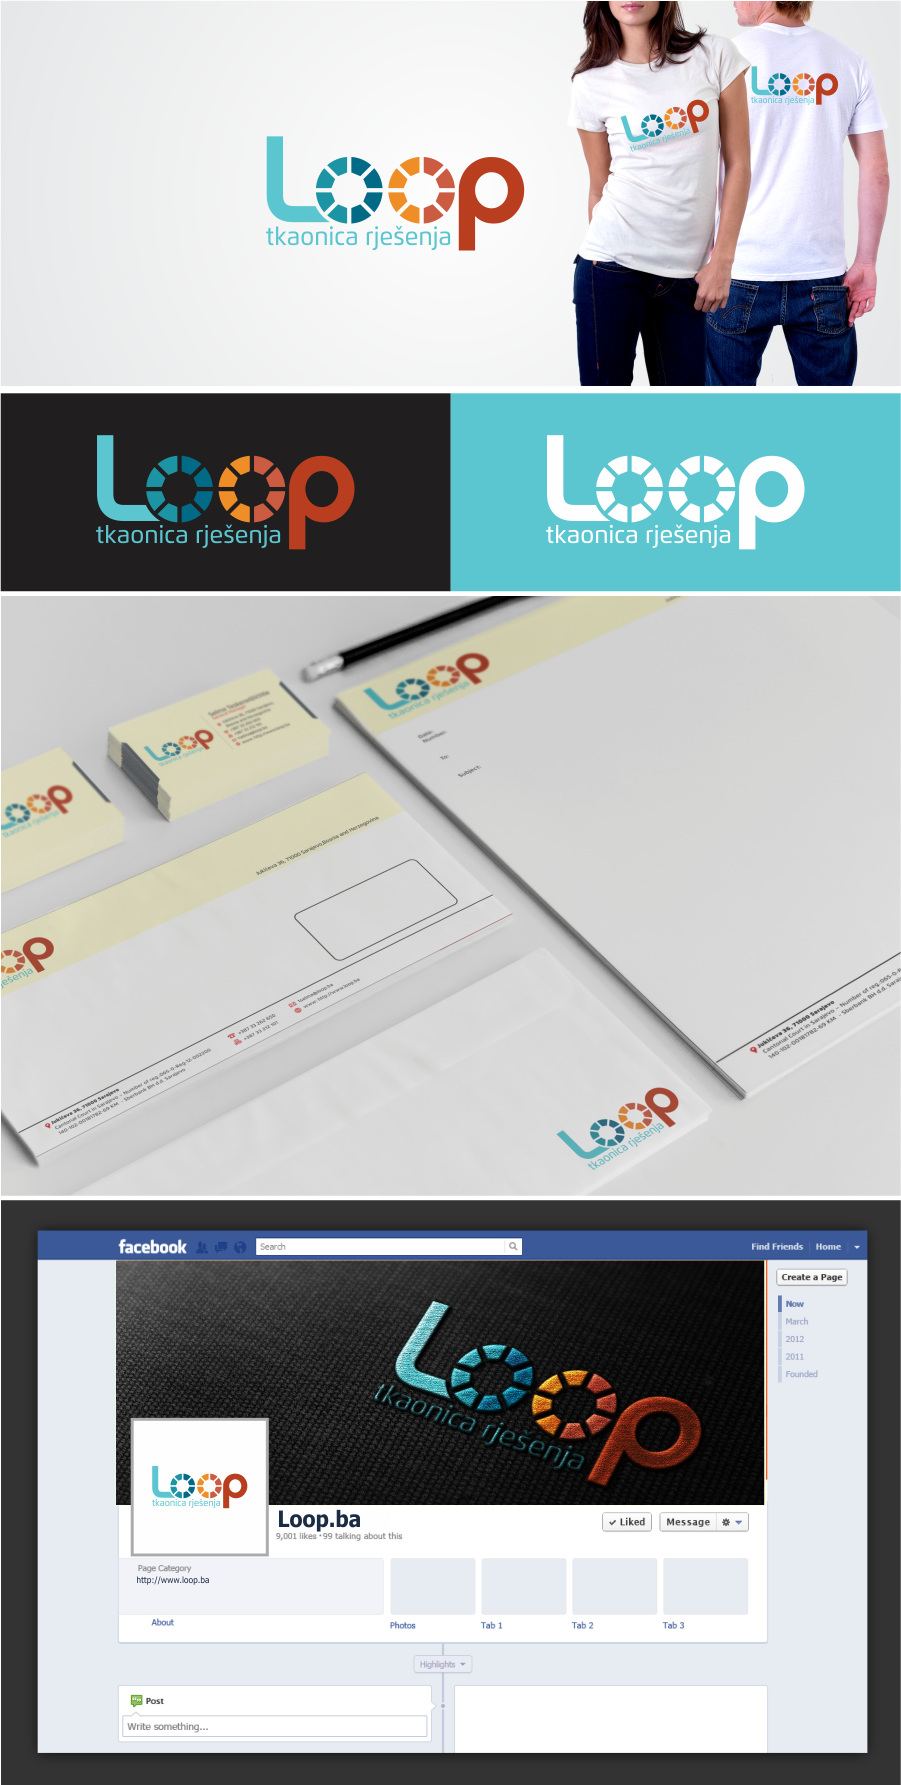 Design an unique and eye catching visual identity for Loop